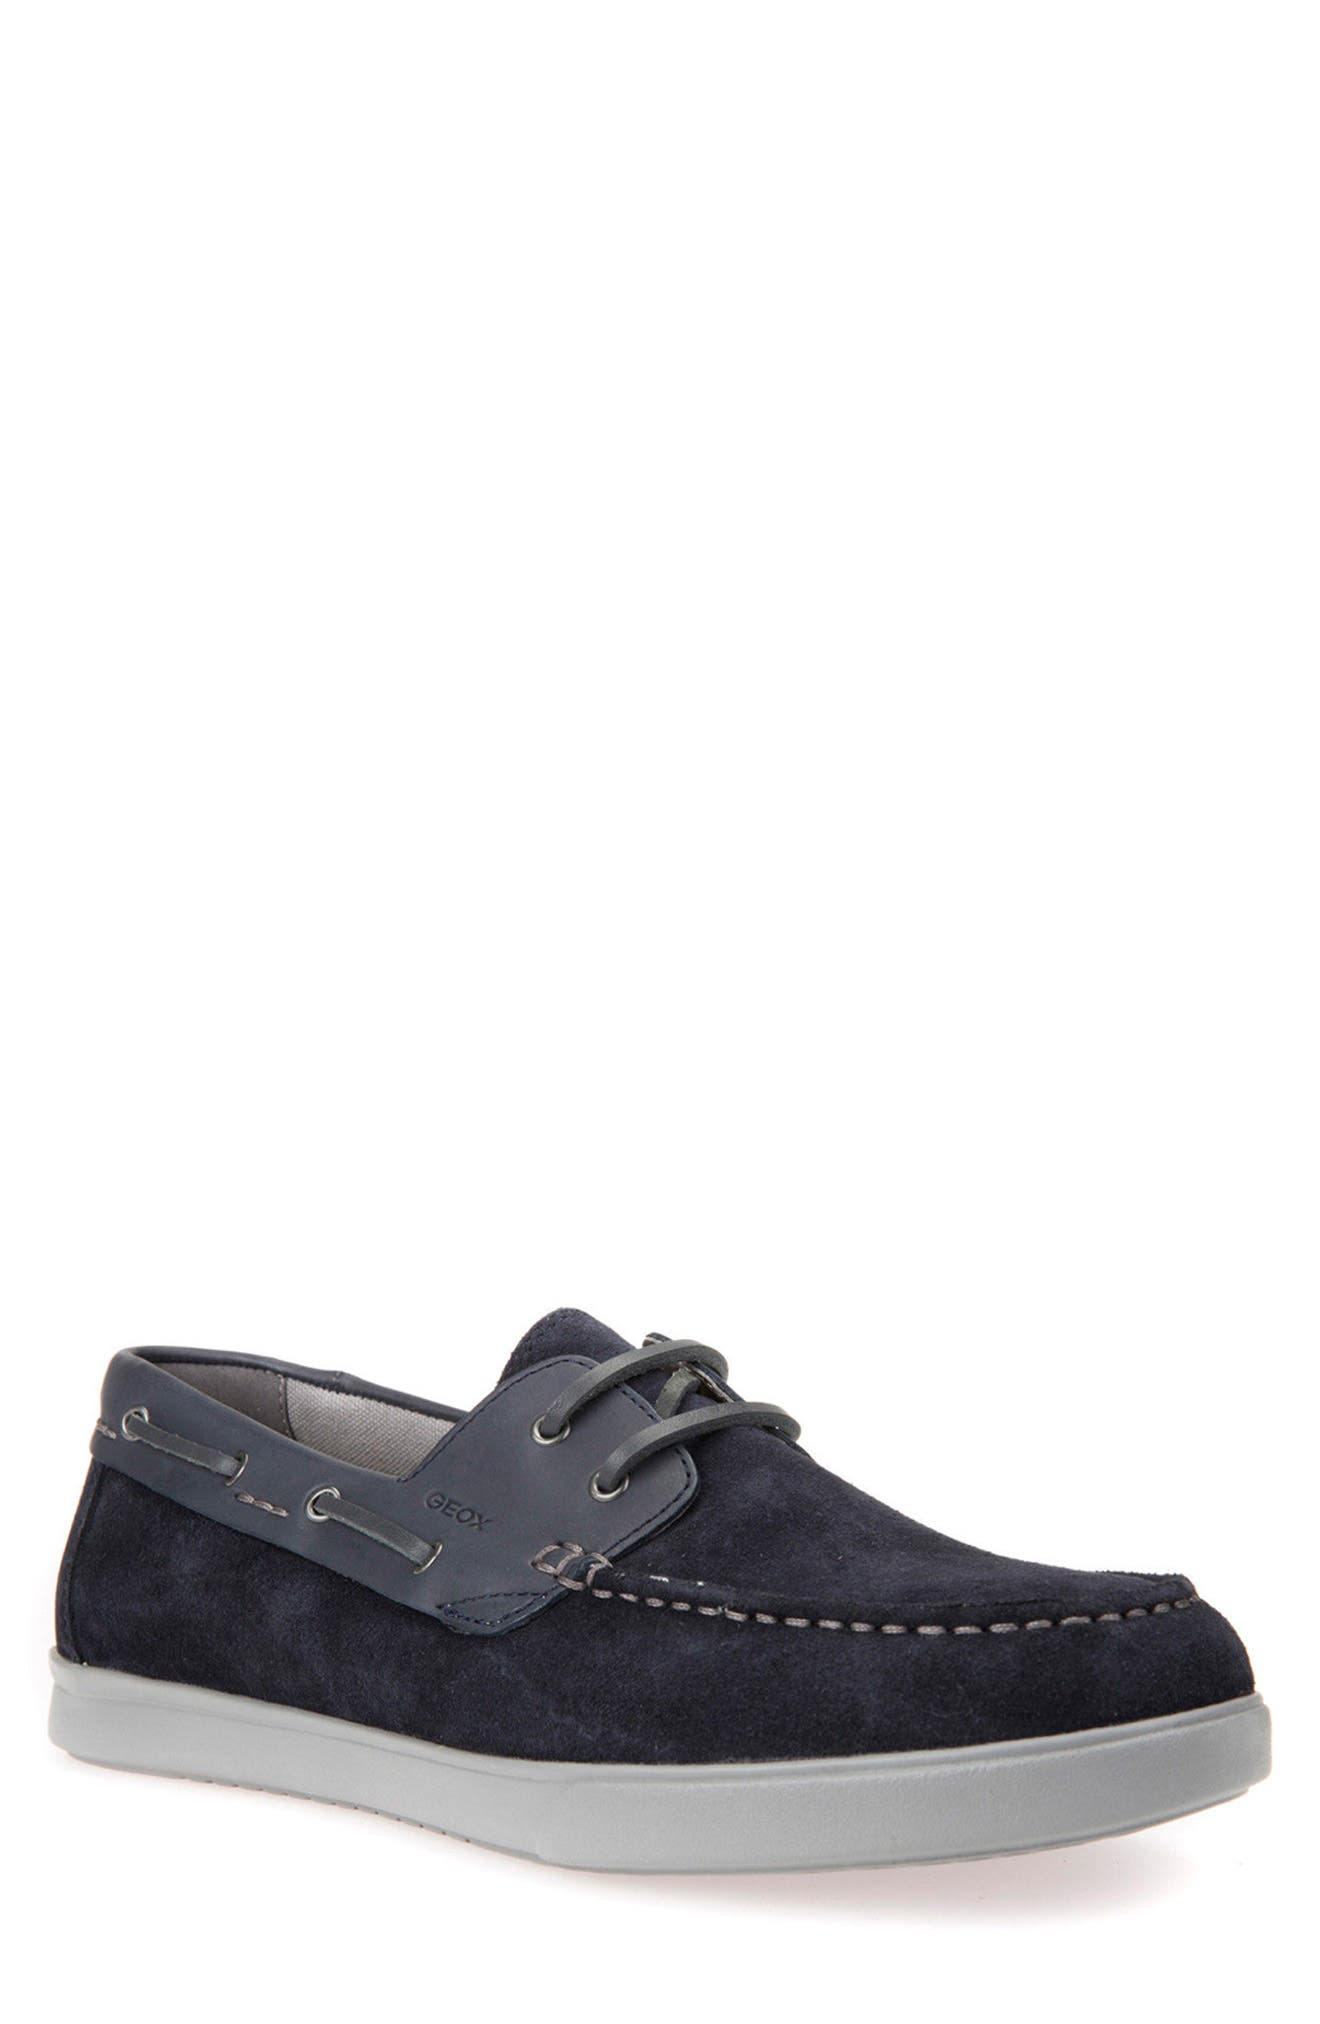 Walee 2 Boat Shoe,                         Main,                         color, Navy Suede/ Leather